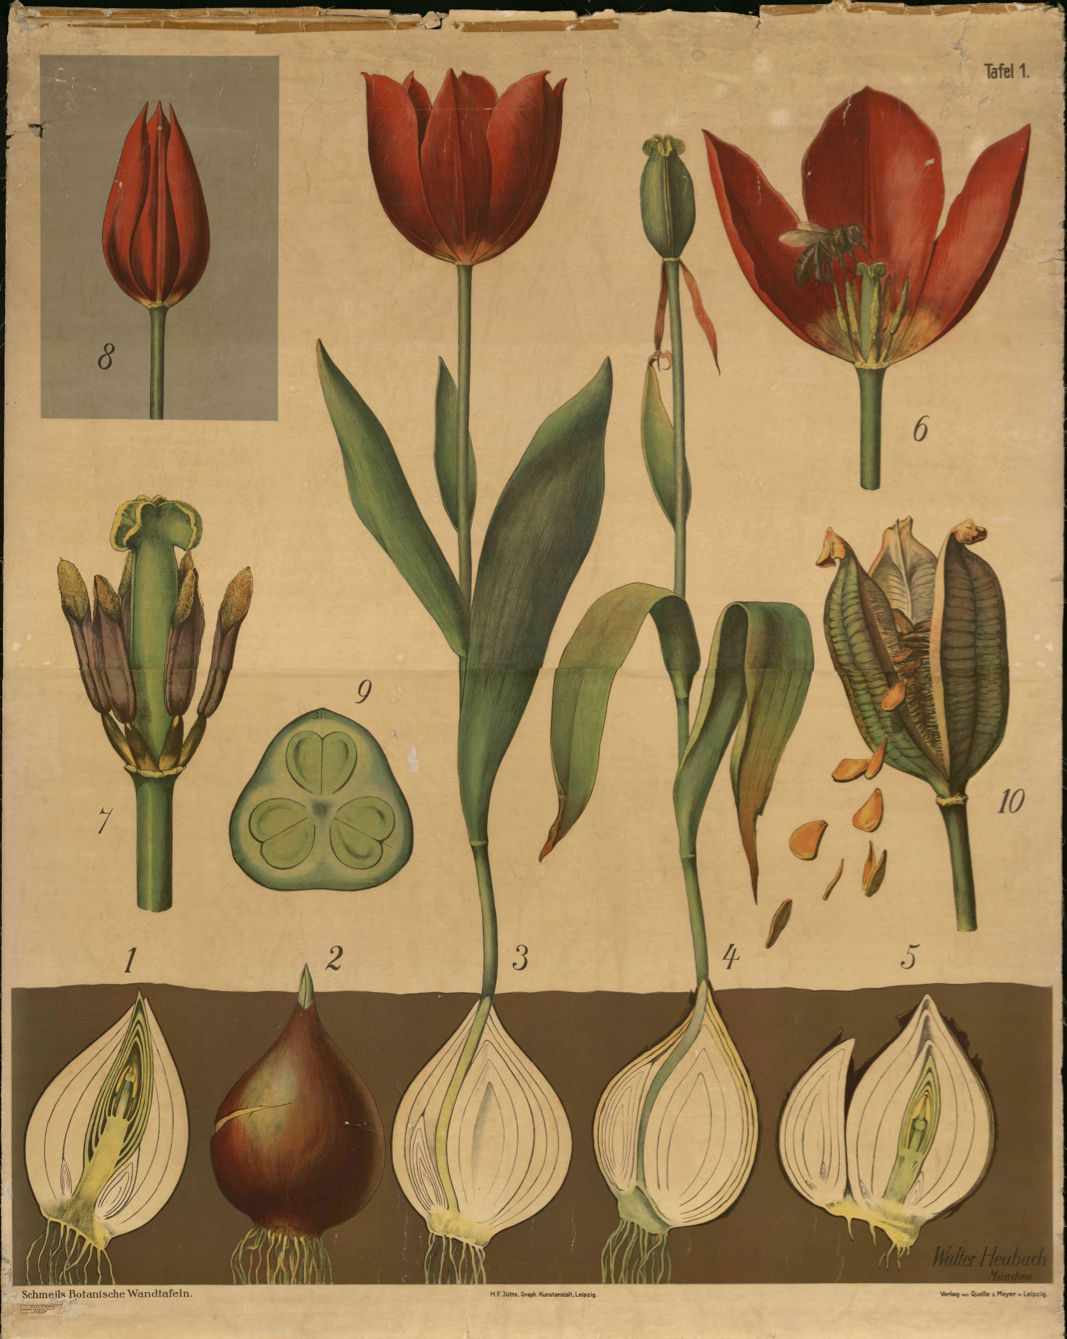 Vintage plant anatomy. The art of anatomical drawings, long gone ...